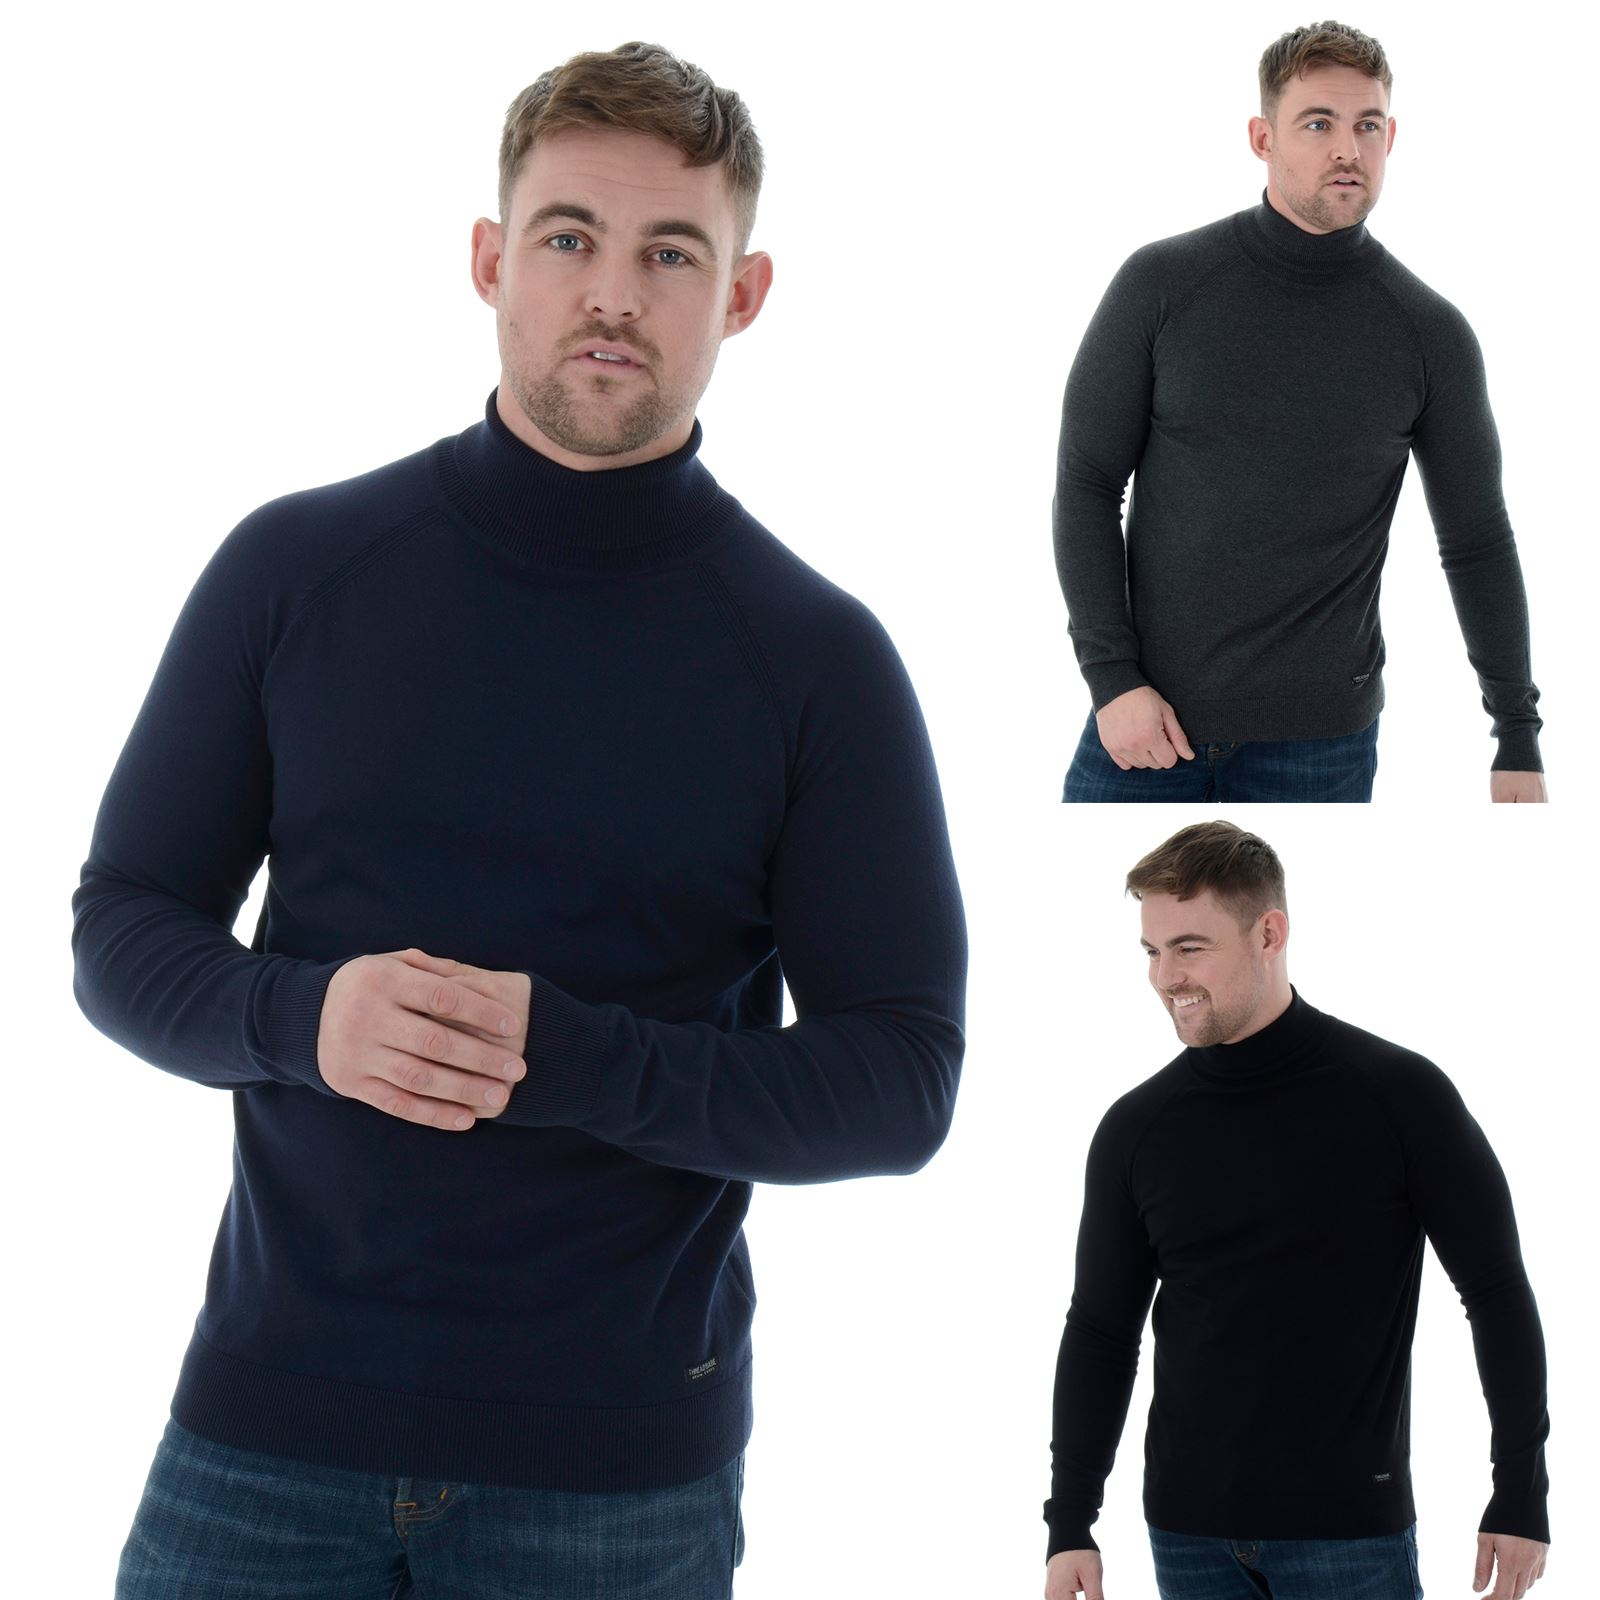 f0c32c9609 Details about Mens Threadbare Polo Roll Neck Sweater Long Sleeve Cotton  Jumper S-XXL (Logan)